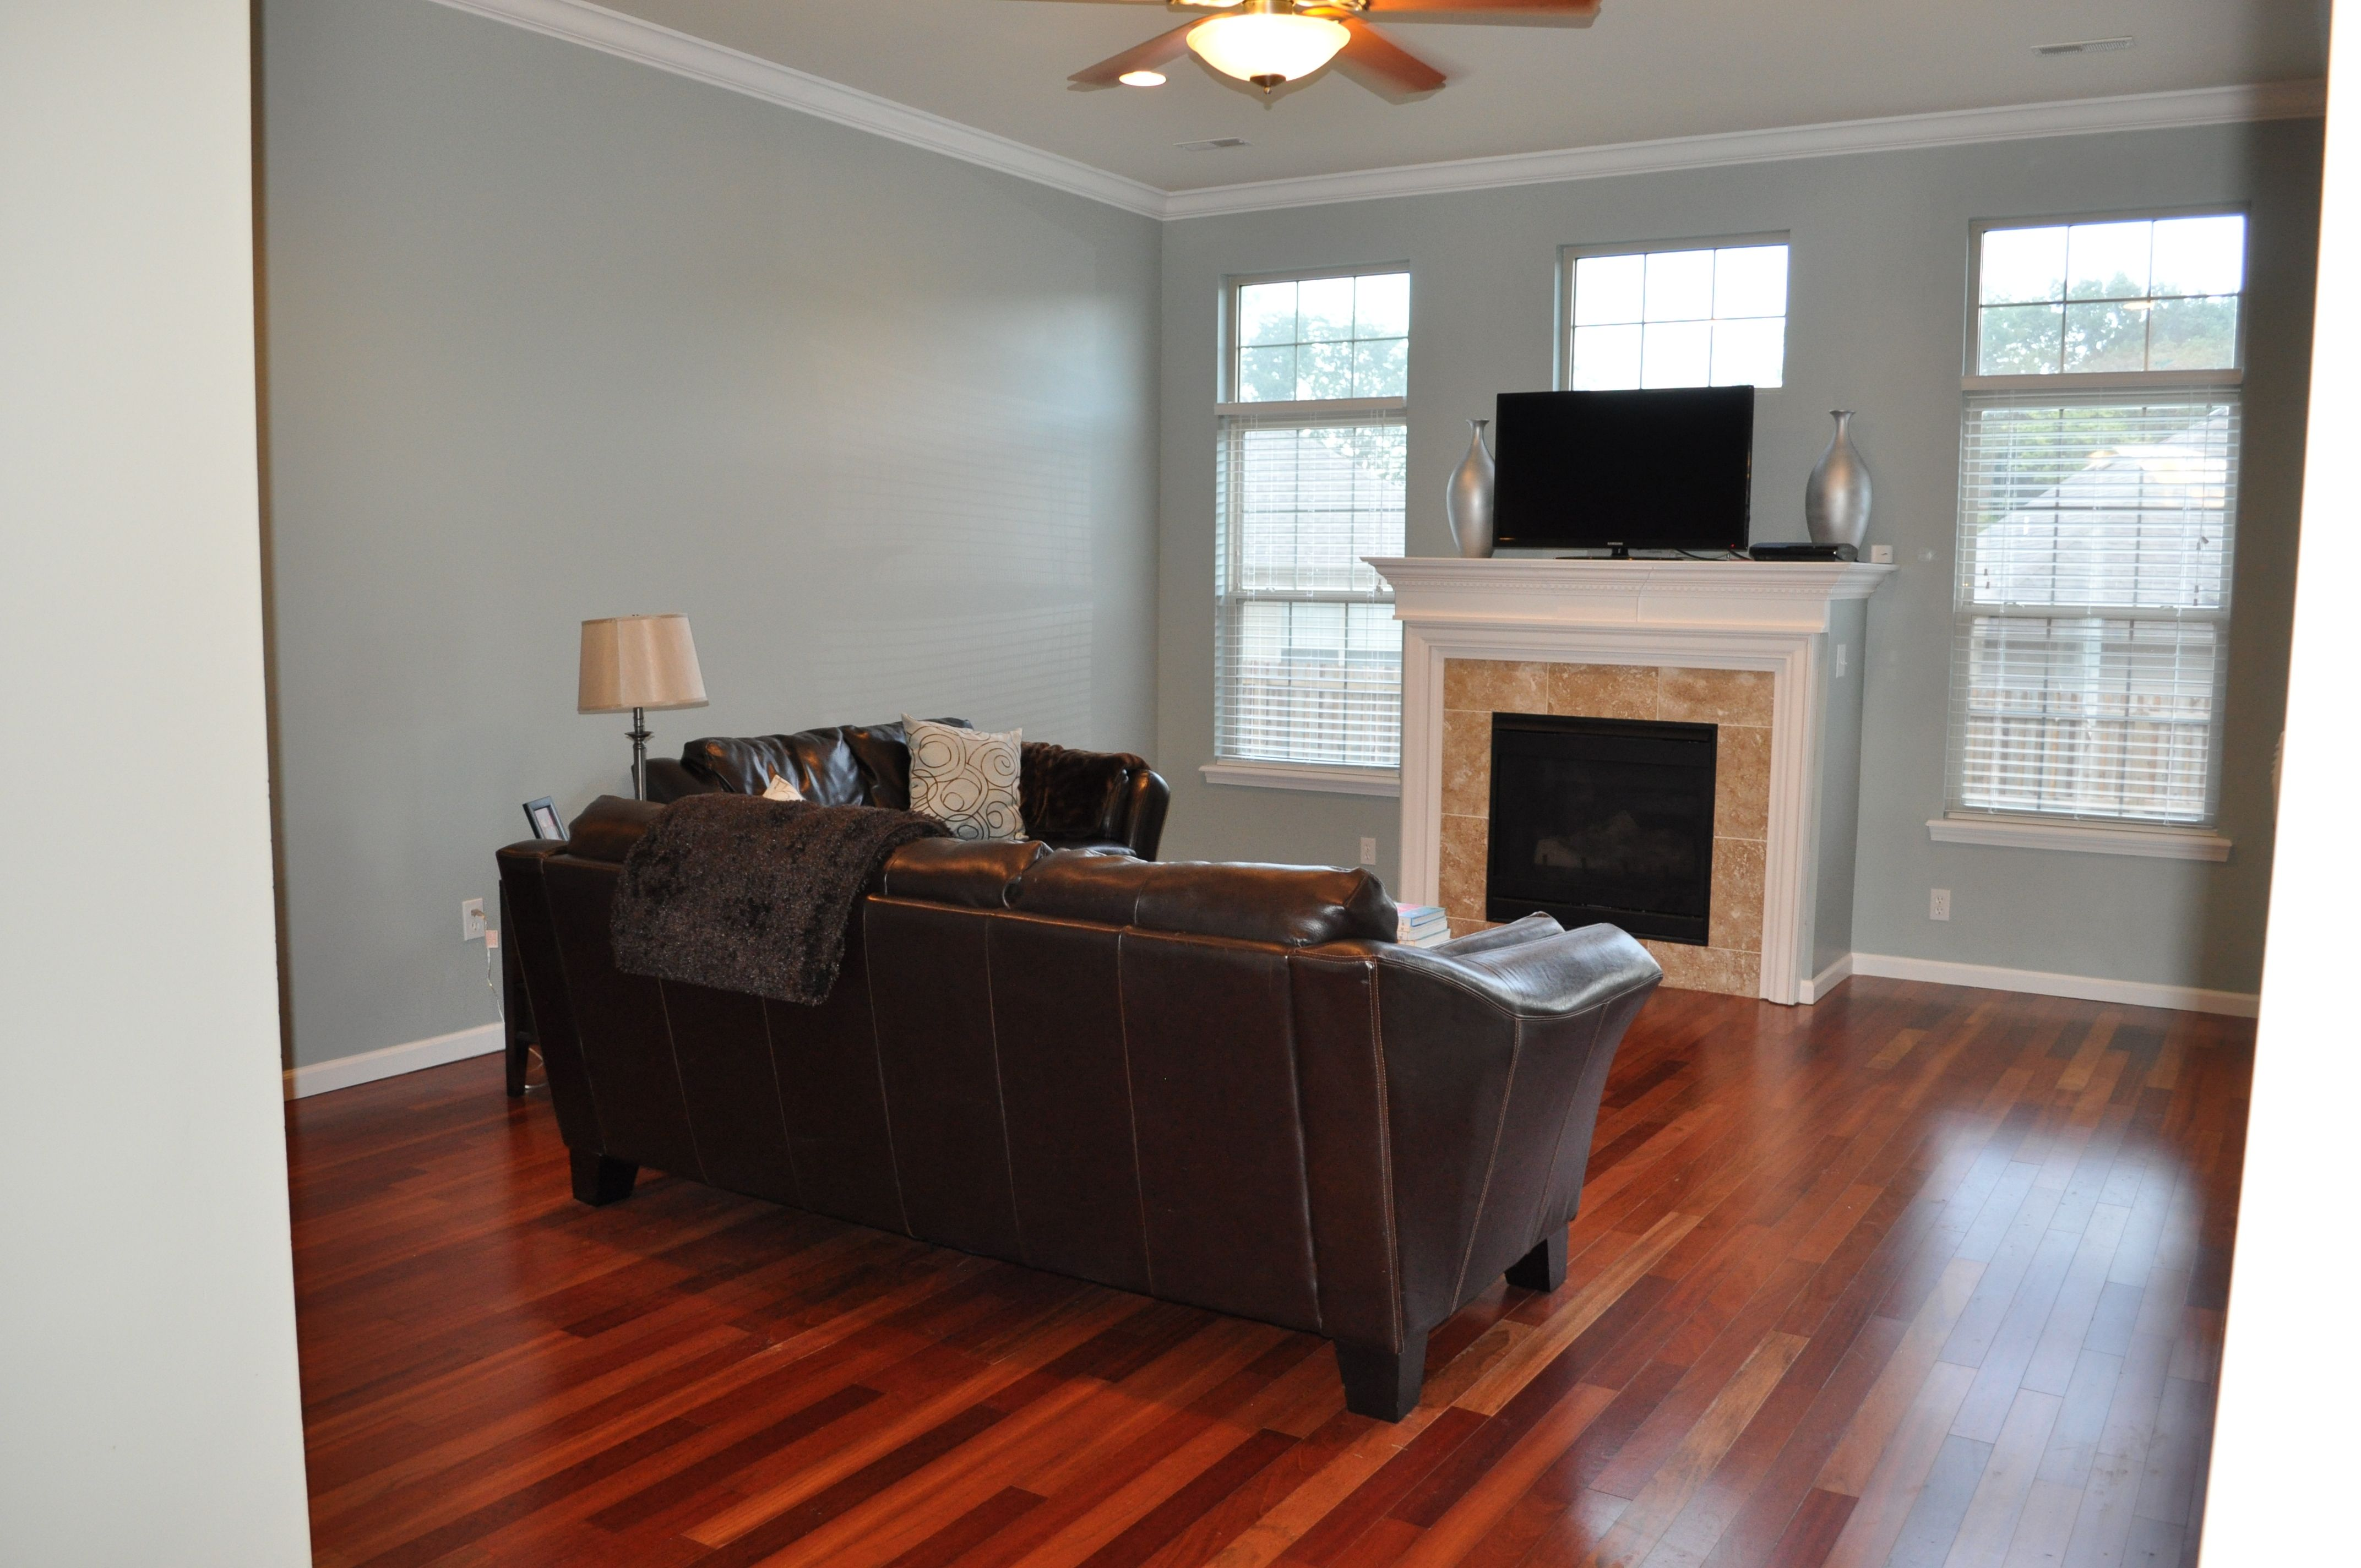 Our Living Room Paint Color Sherwin Williams Silvermist Living Room Pinterest Living Room